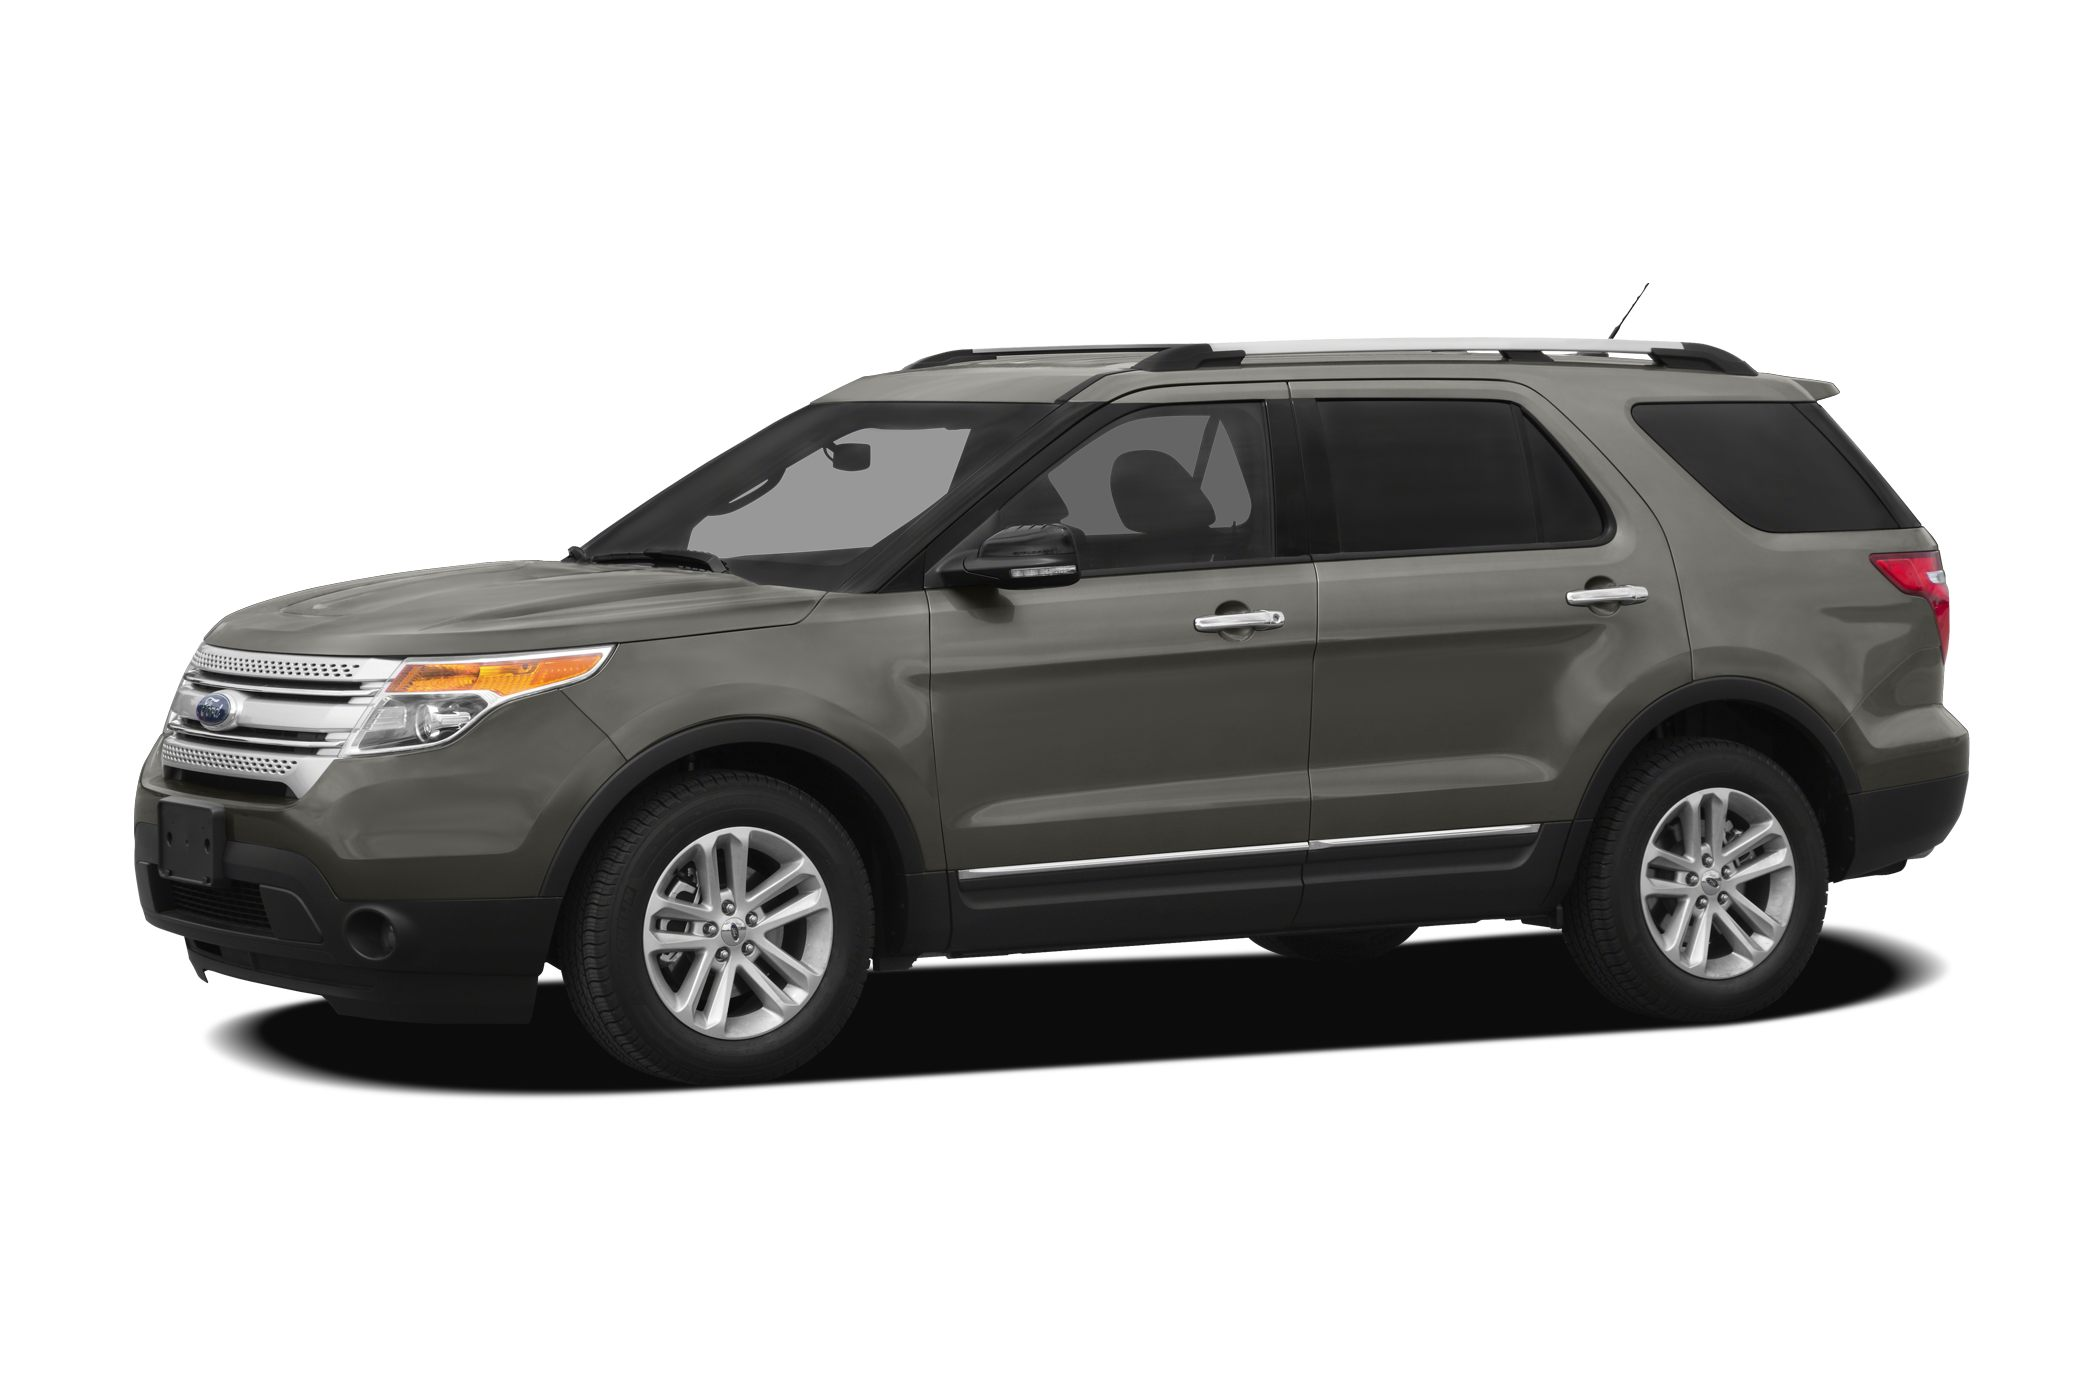 2012 Ford Explorer XLT SUV for sale in Malone for $28,625 with 36,638 miles.